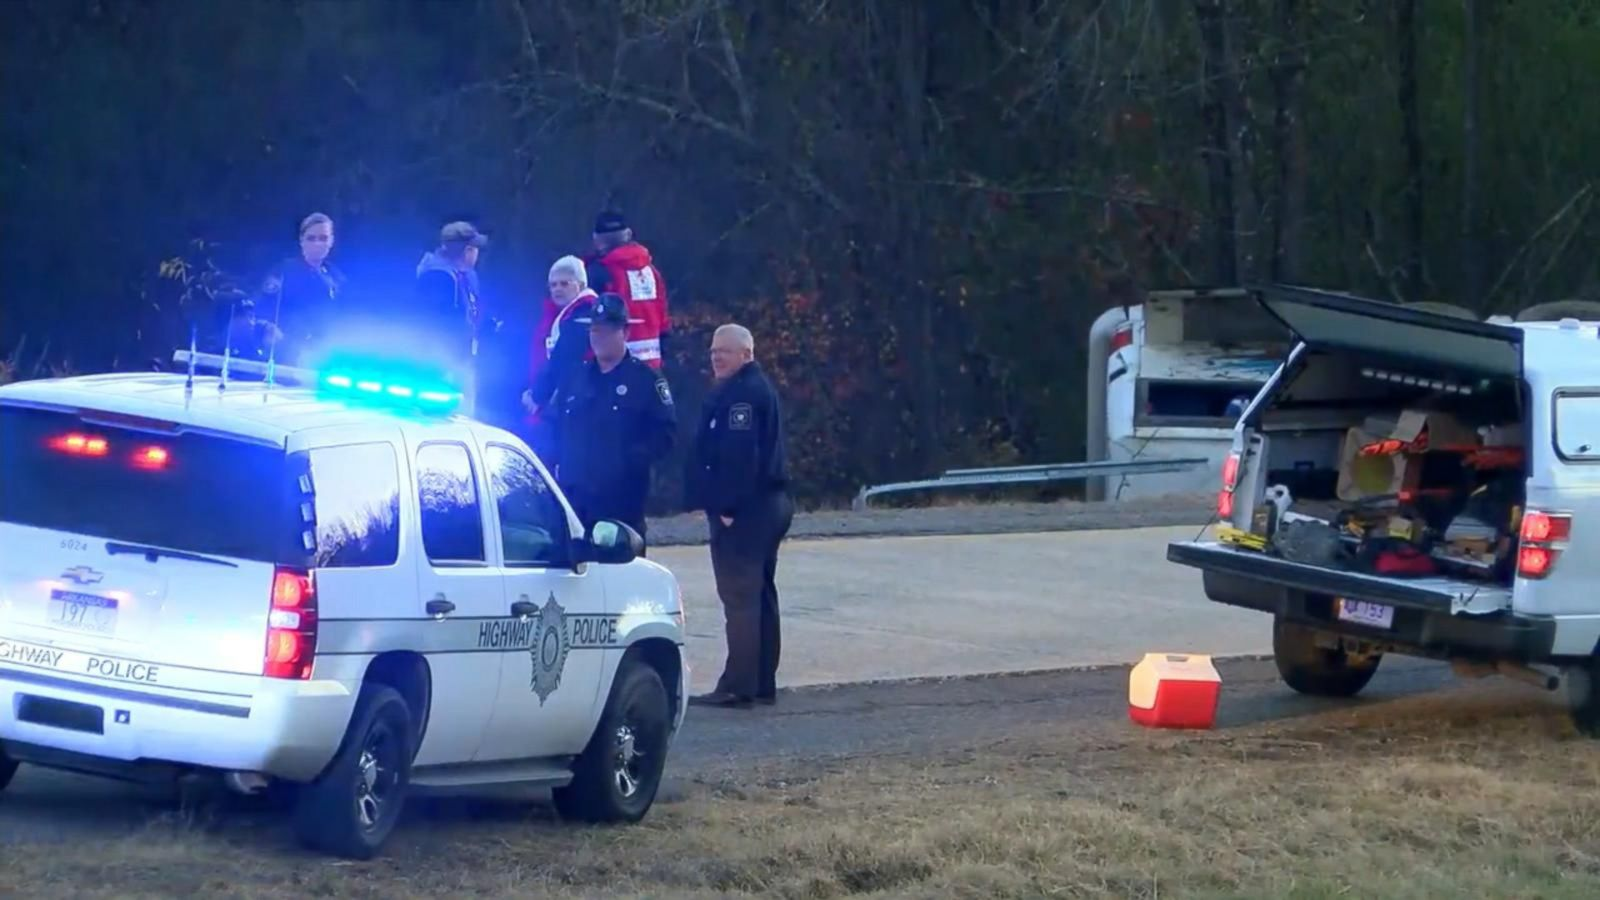 1 child killed, at least 45 injured when charter bus carrying youth